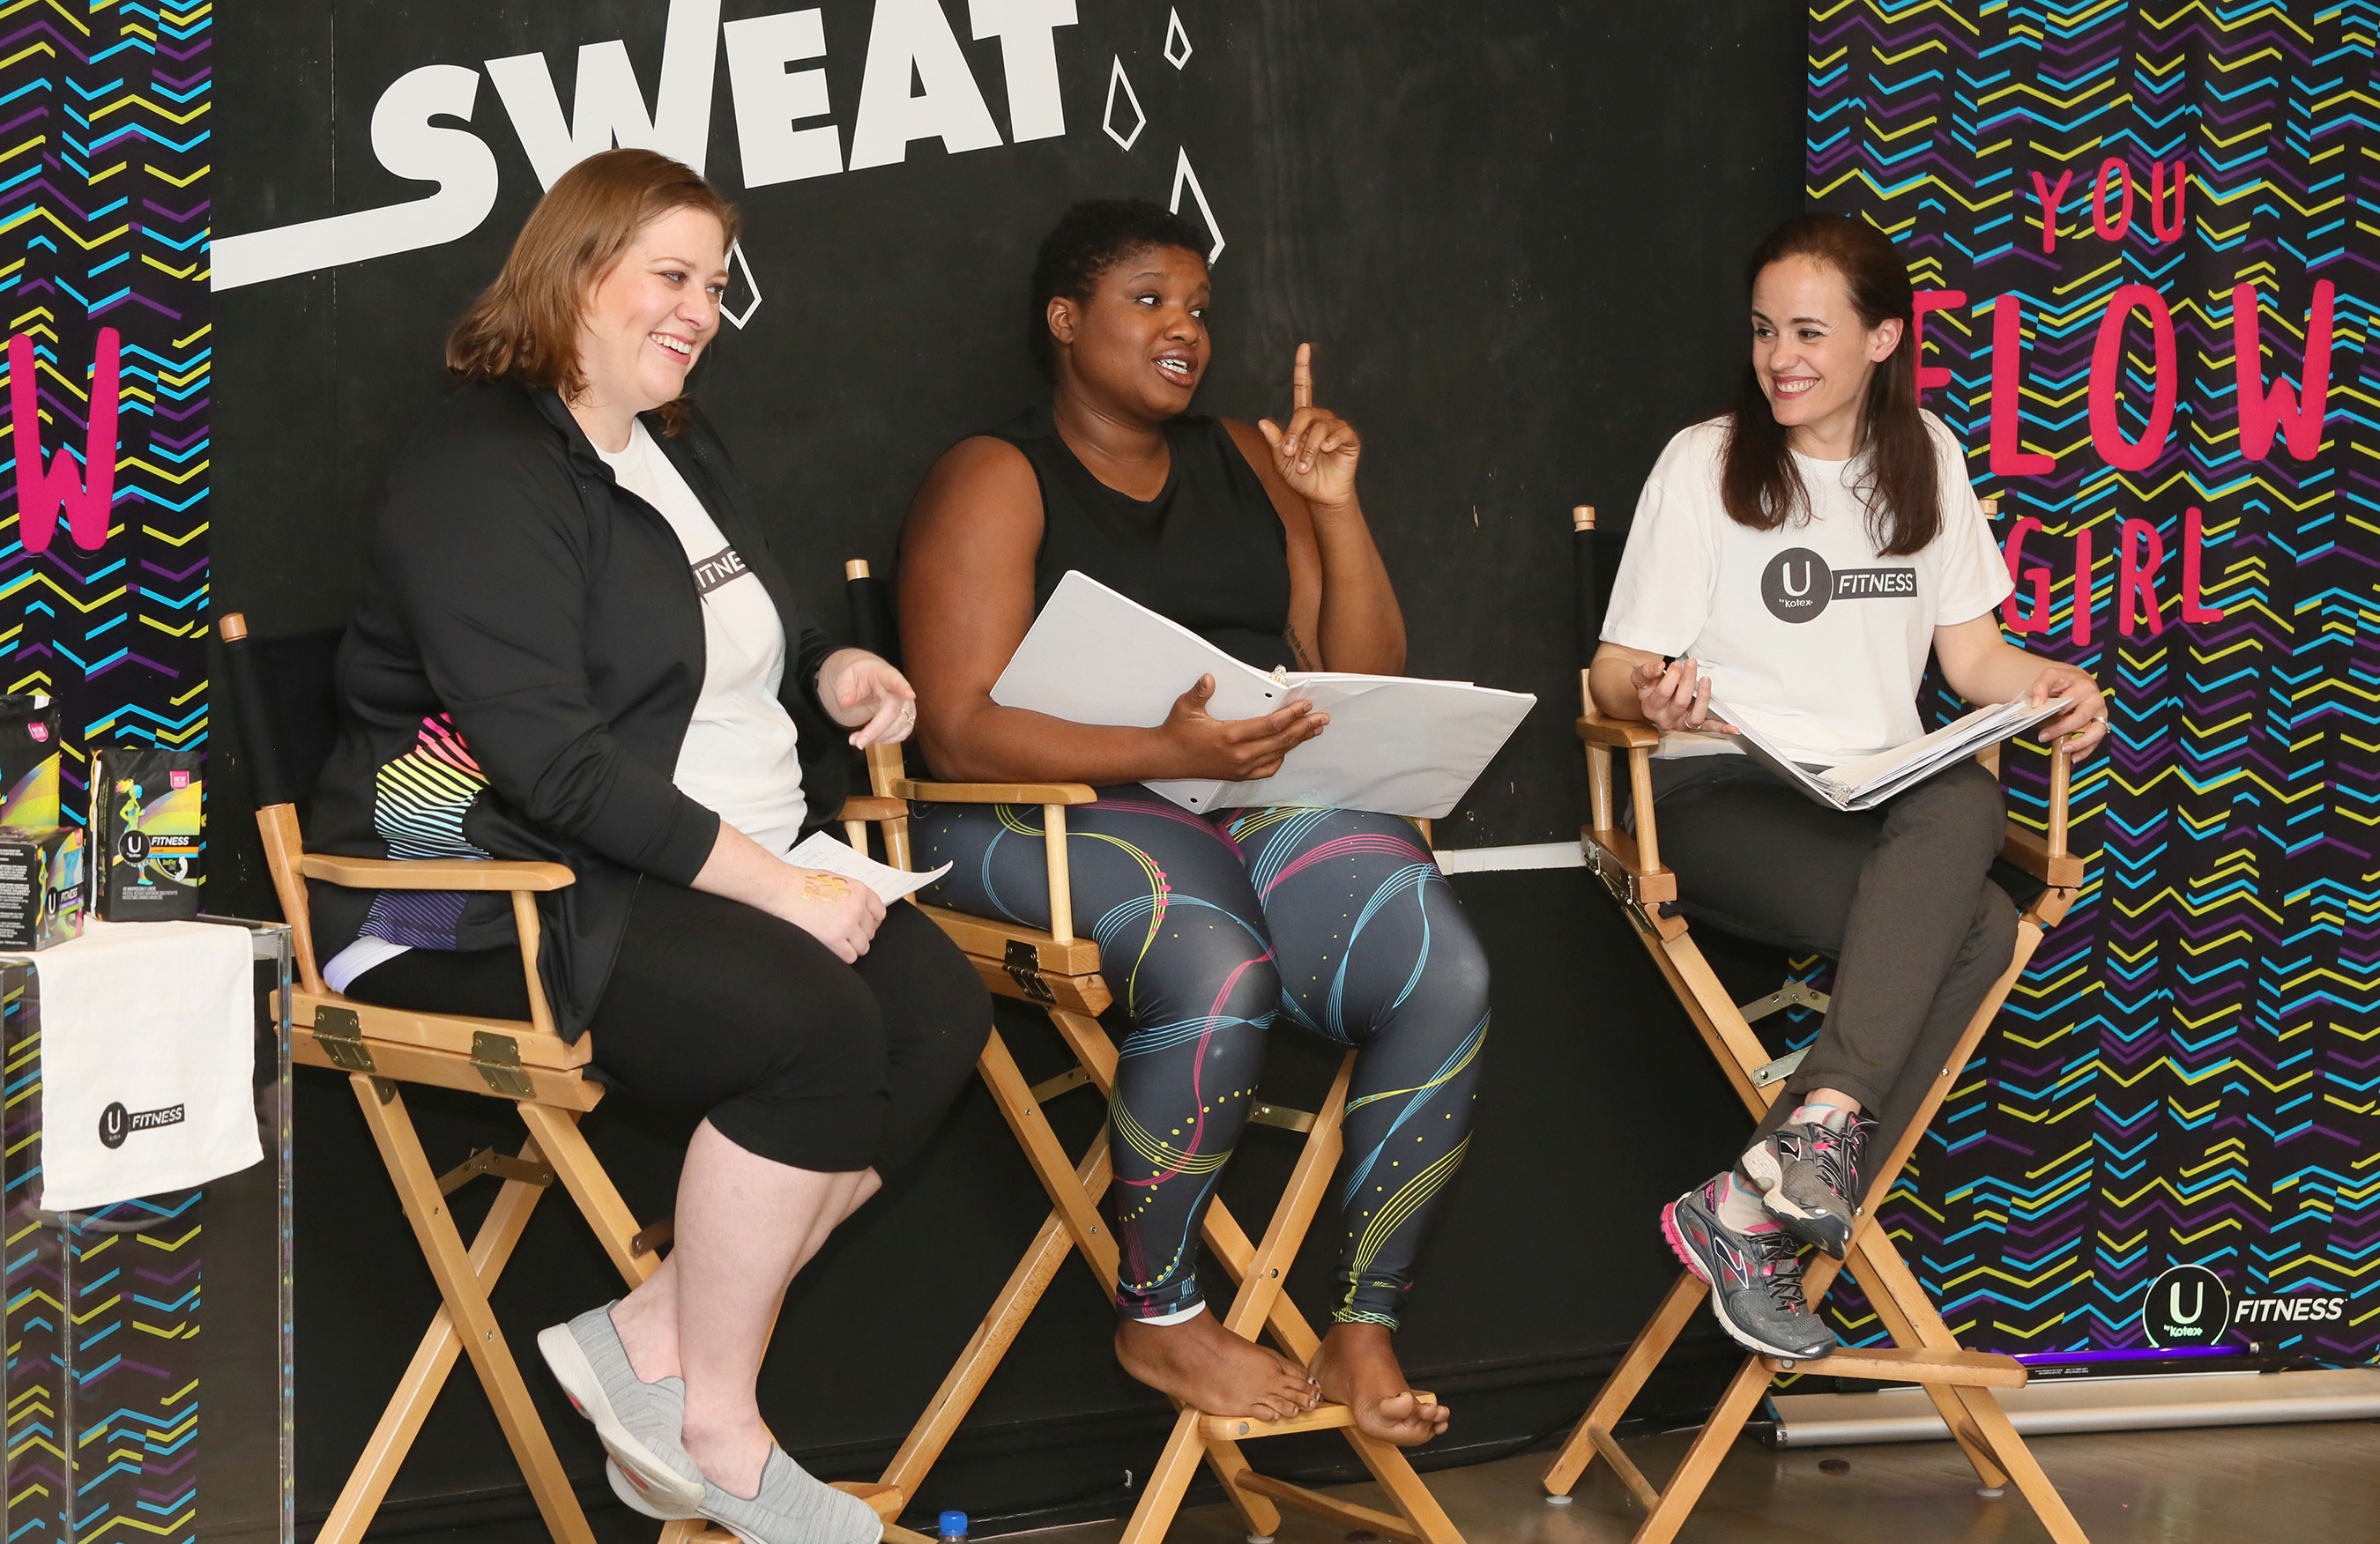 Yoga teacher and body positivity advocate Jessamyn Stanley, center, hosts a panel discussion with Melissa Jacobs, Senior Brand Manager for U by Kotex, left, and licensed clinical psychologist Dr. Elisabeth B. Morray, right, in New York City to celebrate the launch of the NEW U by Kotex® FITNESS* line on Thursday, April 27, 2017. (Stuart Ramson/AP Images for U 